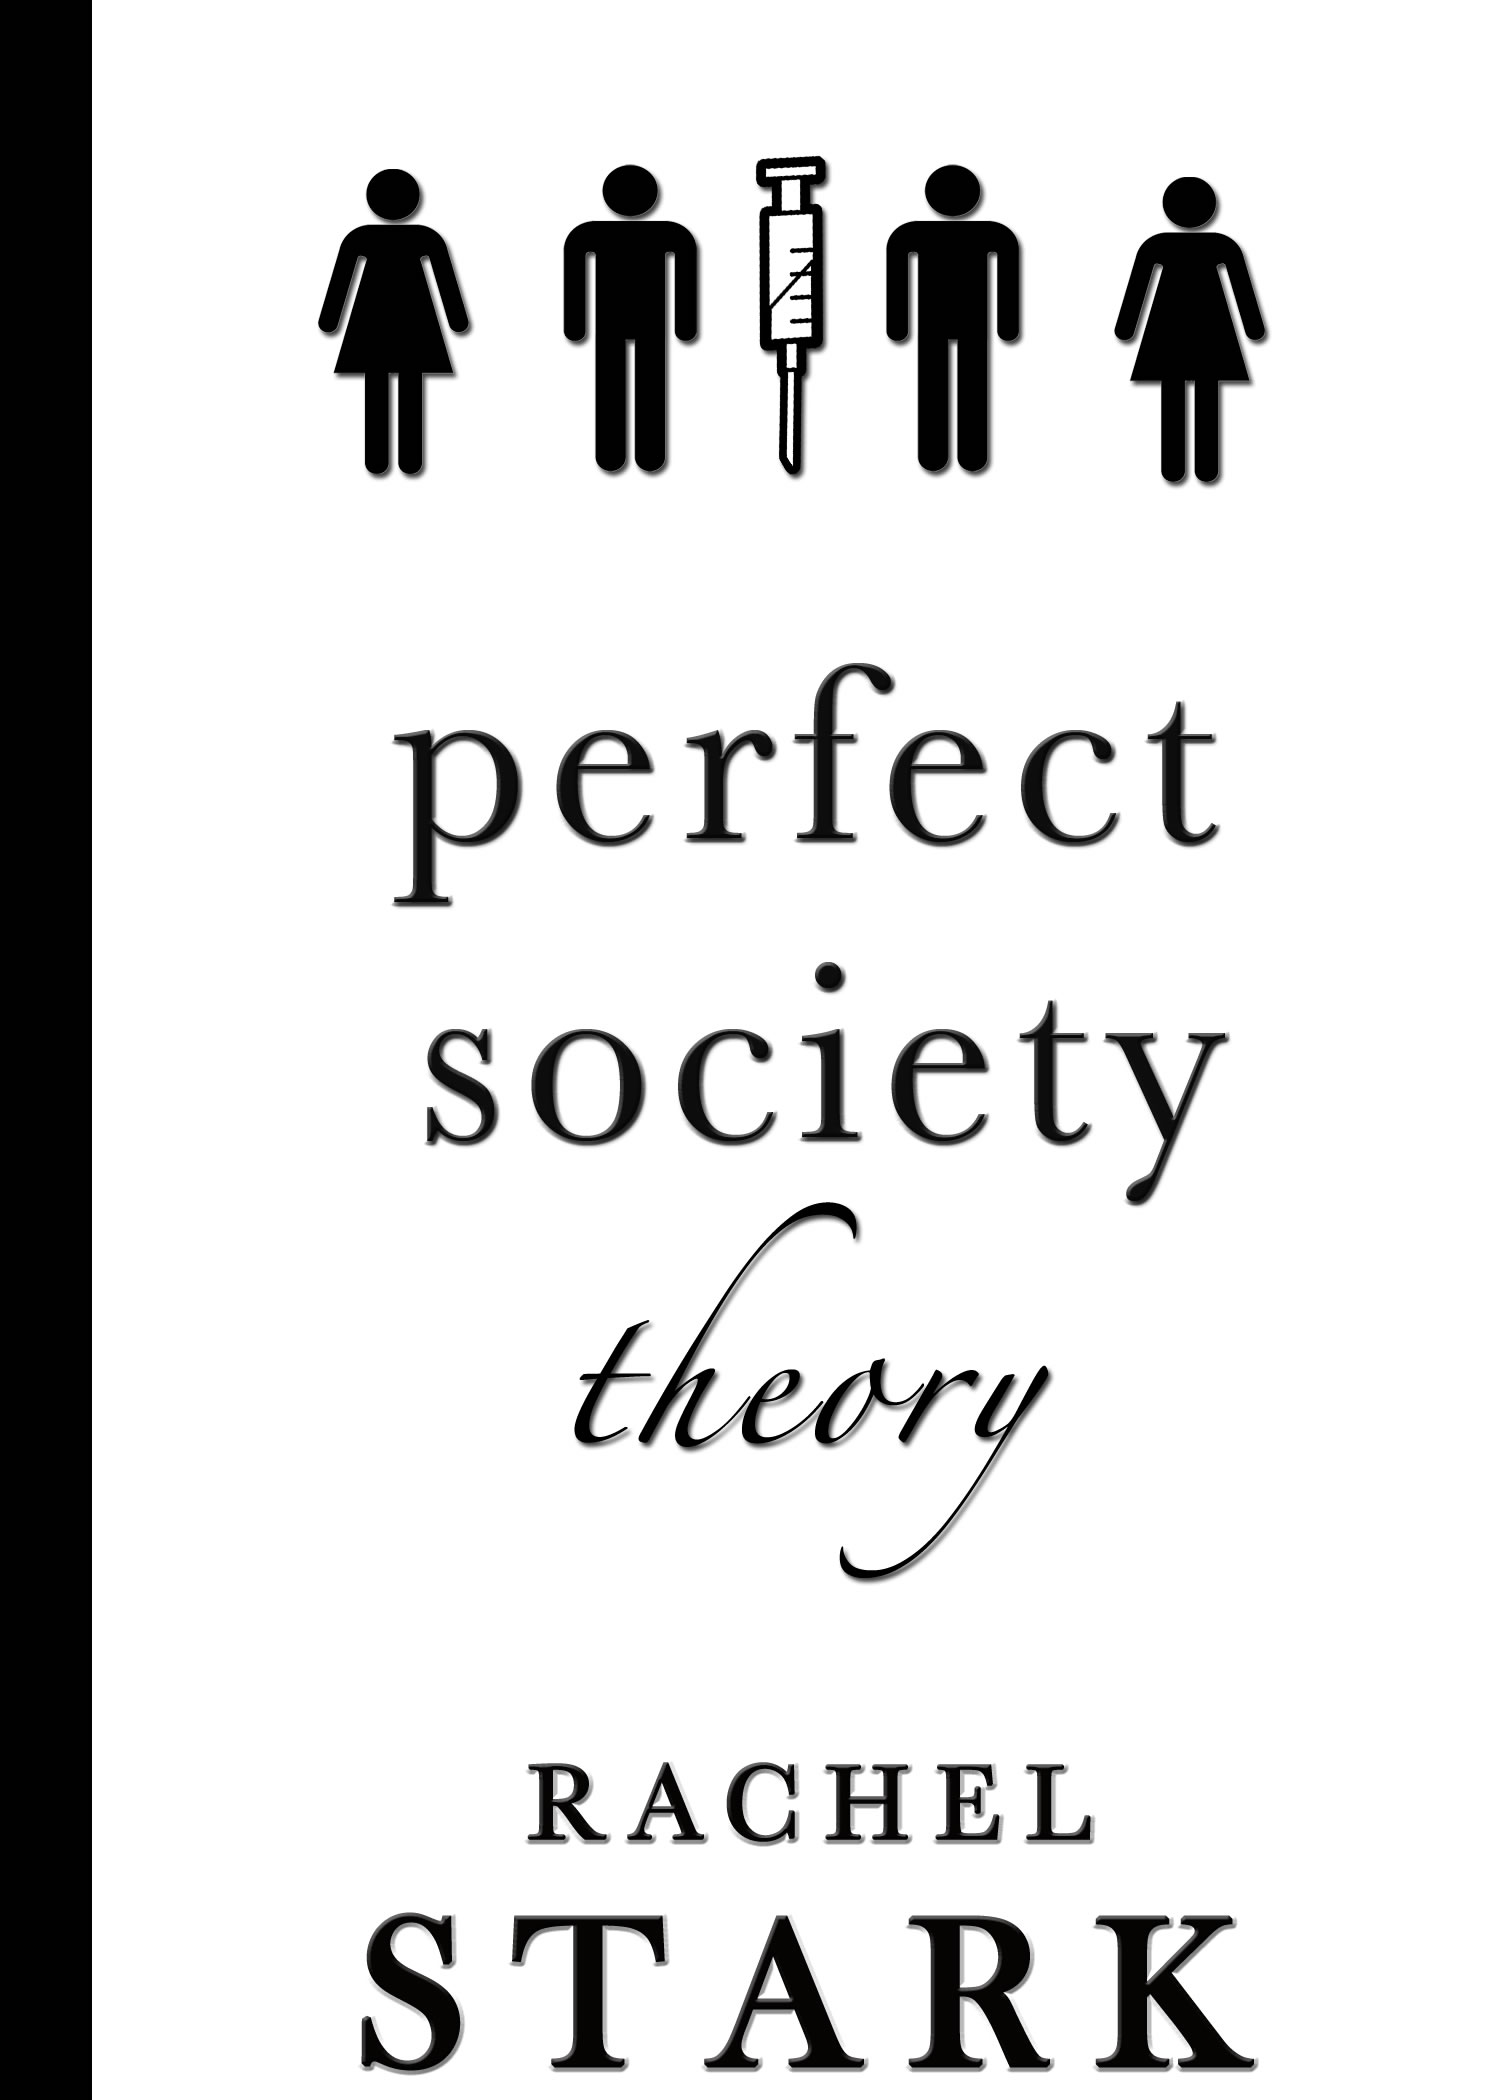 What's Brewing: Perfect Society Theory